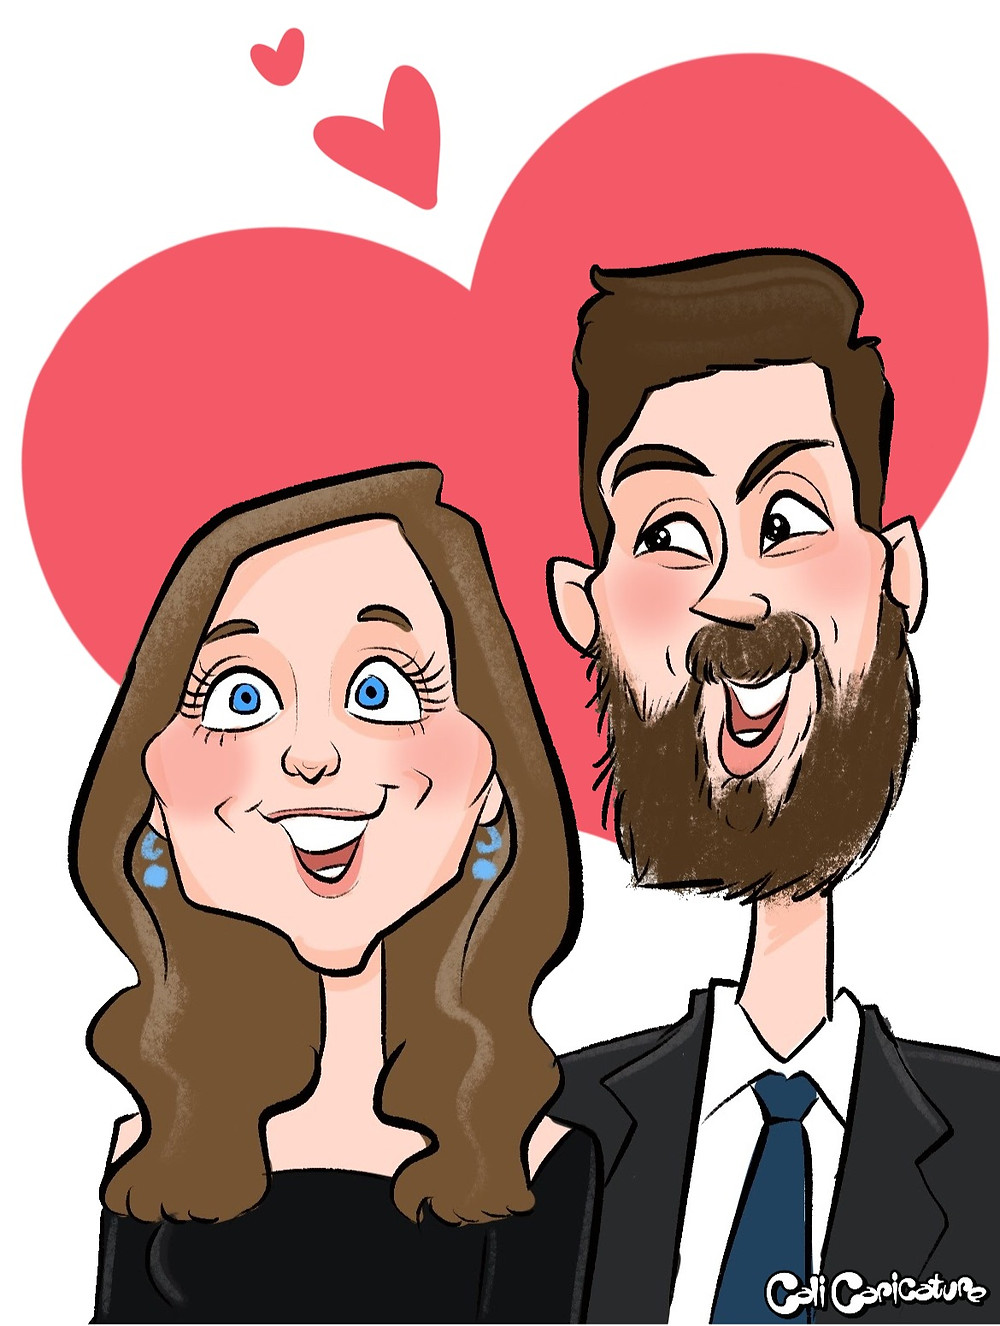 cute couple caricature digital caricatures drawing couples cartoon faces portrait hearts love romance romantic